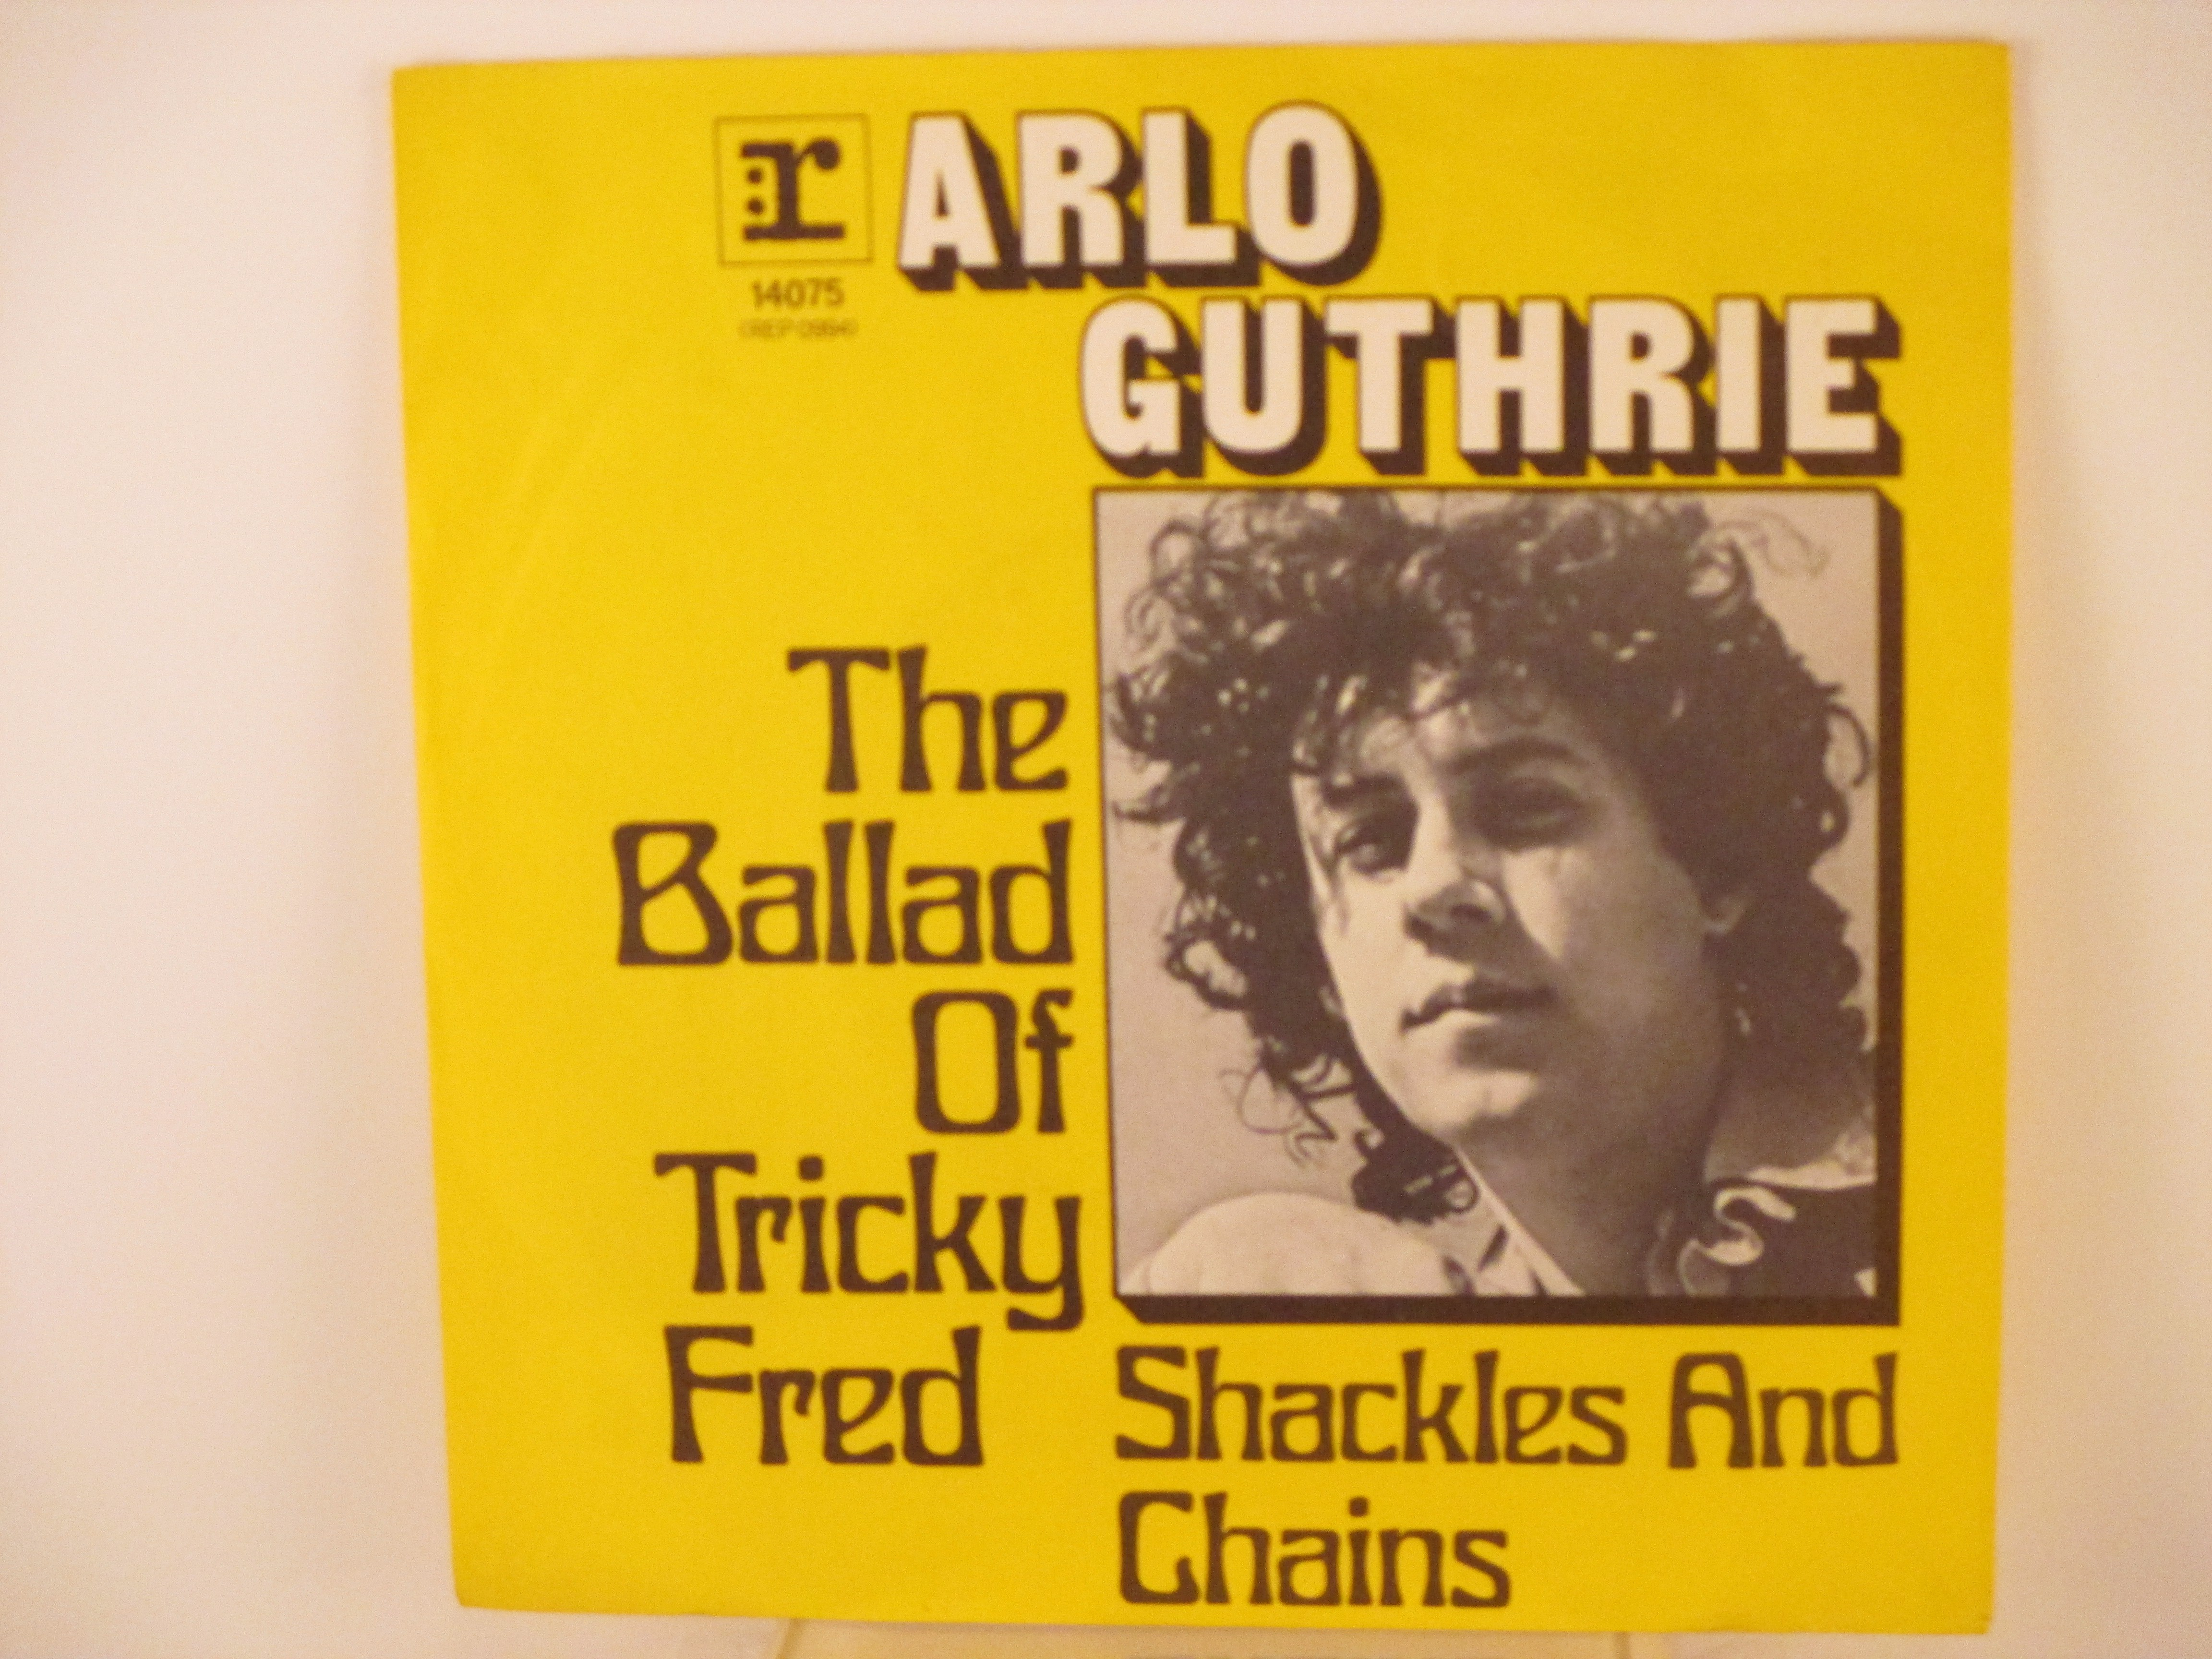 ARLO GUTHRIE & RY COODER : The ballad of tricky Fred / Shackles ands chains